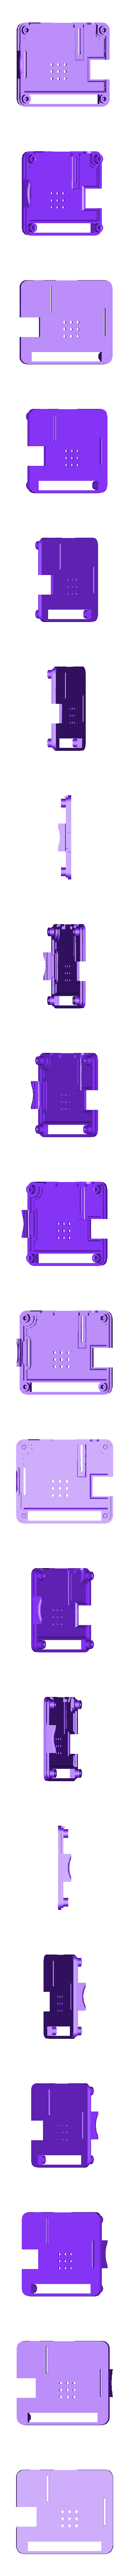 A_plus_compact_top_v2.1.stl Download free STL file A very compact Raspberry Pi A+ case • 3D printable template, Lassaalk